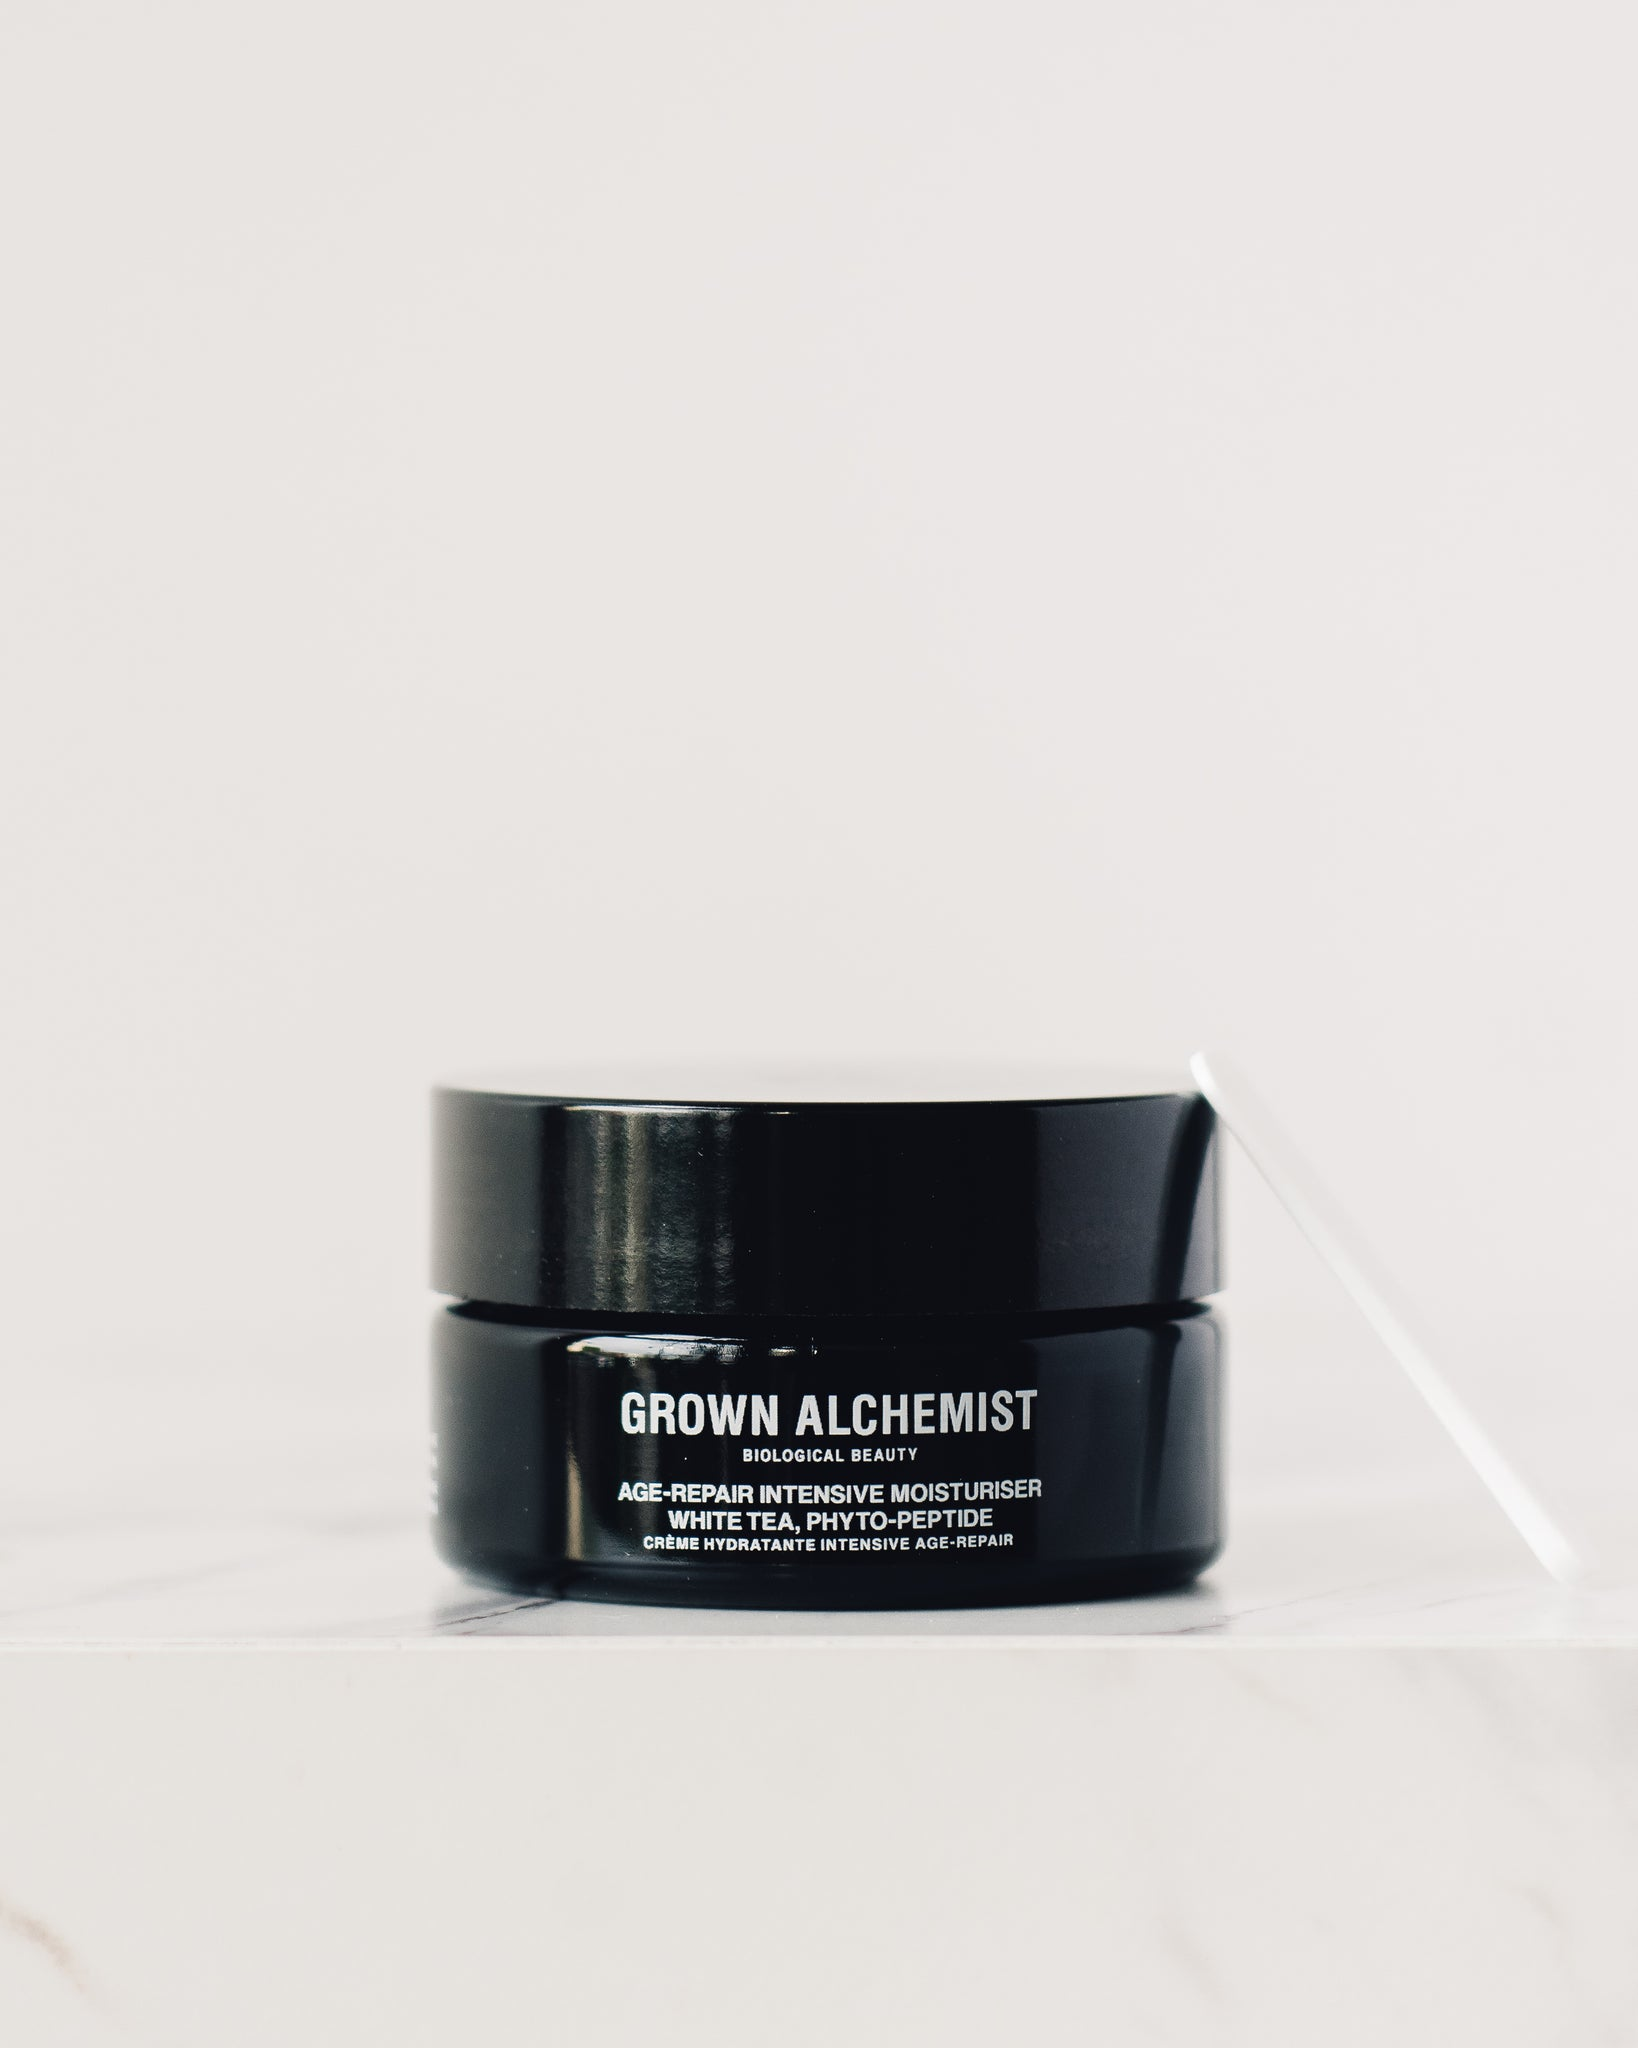 Grown Alchemist Age Repair Intensive Moisturizer